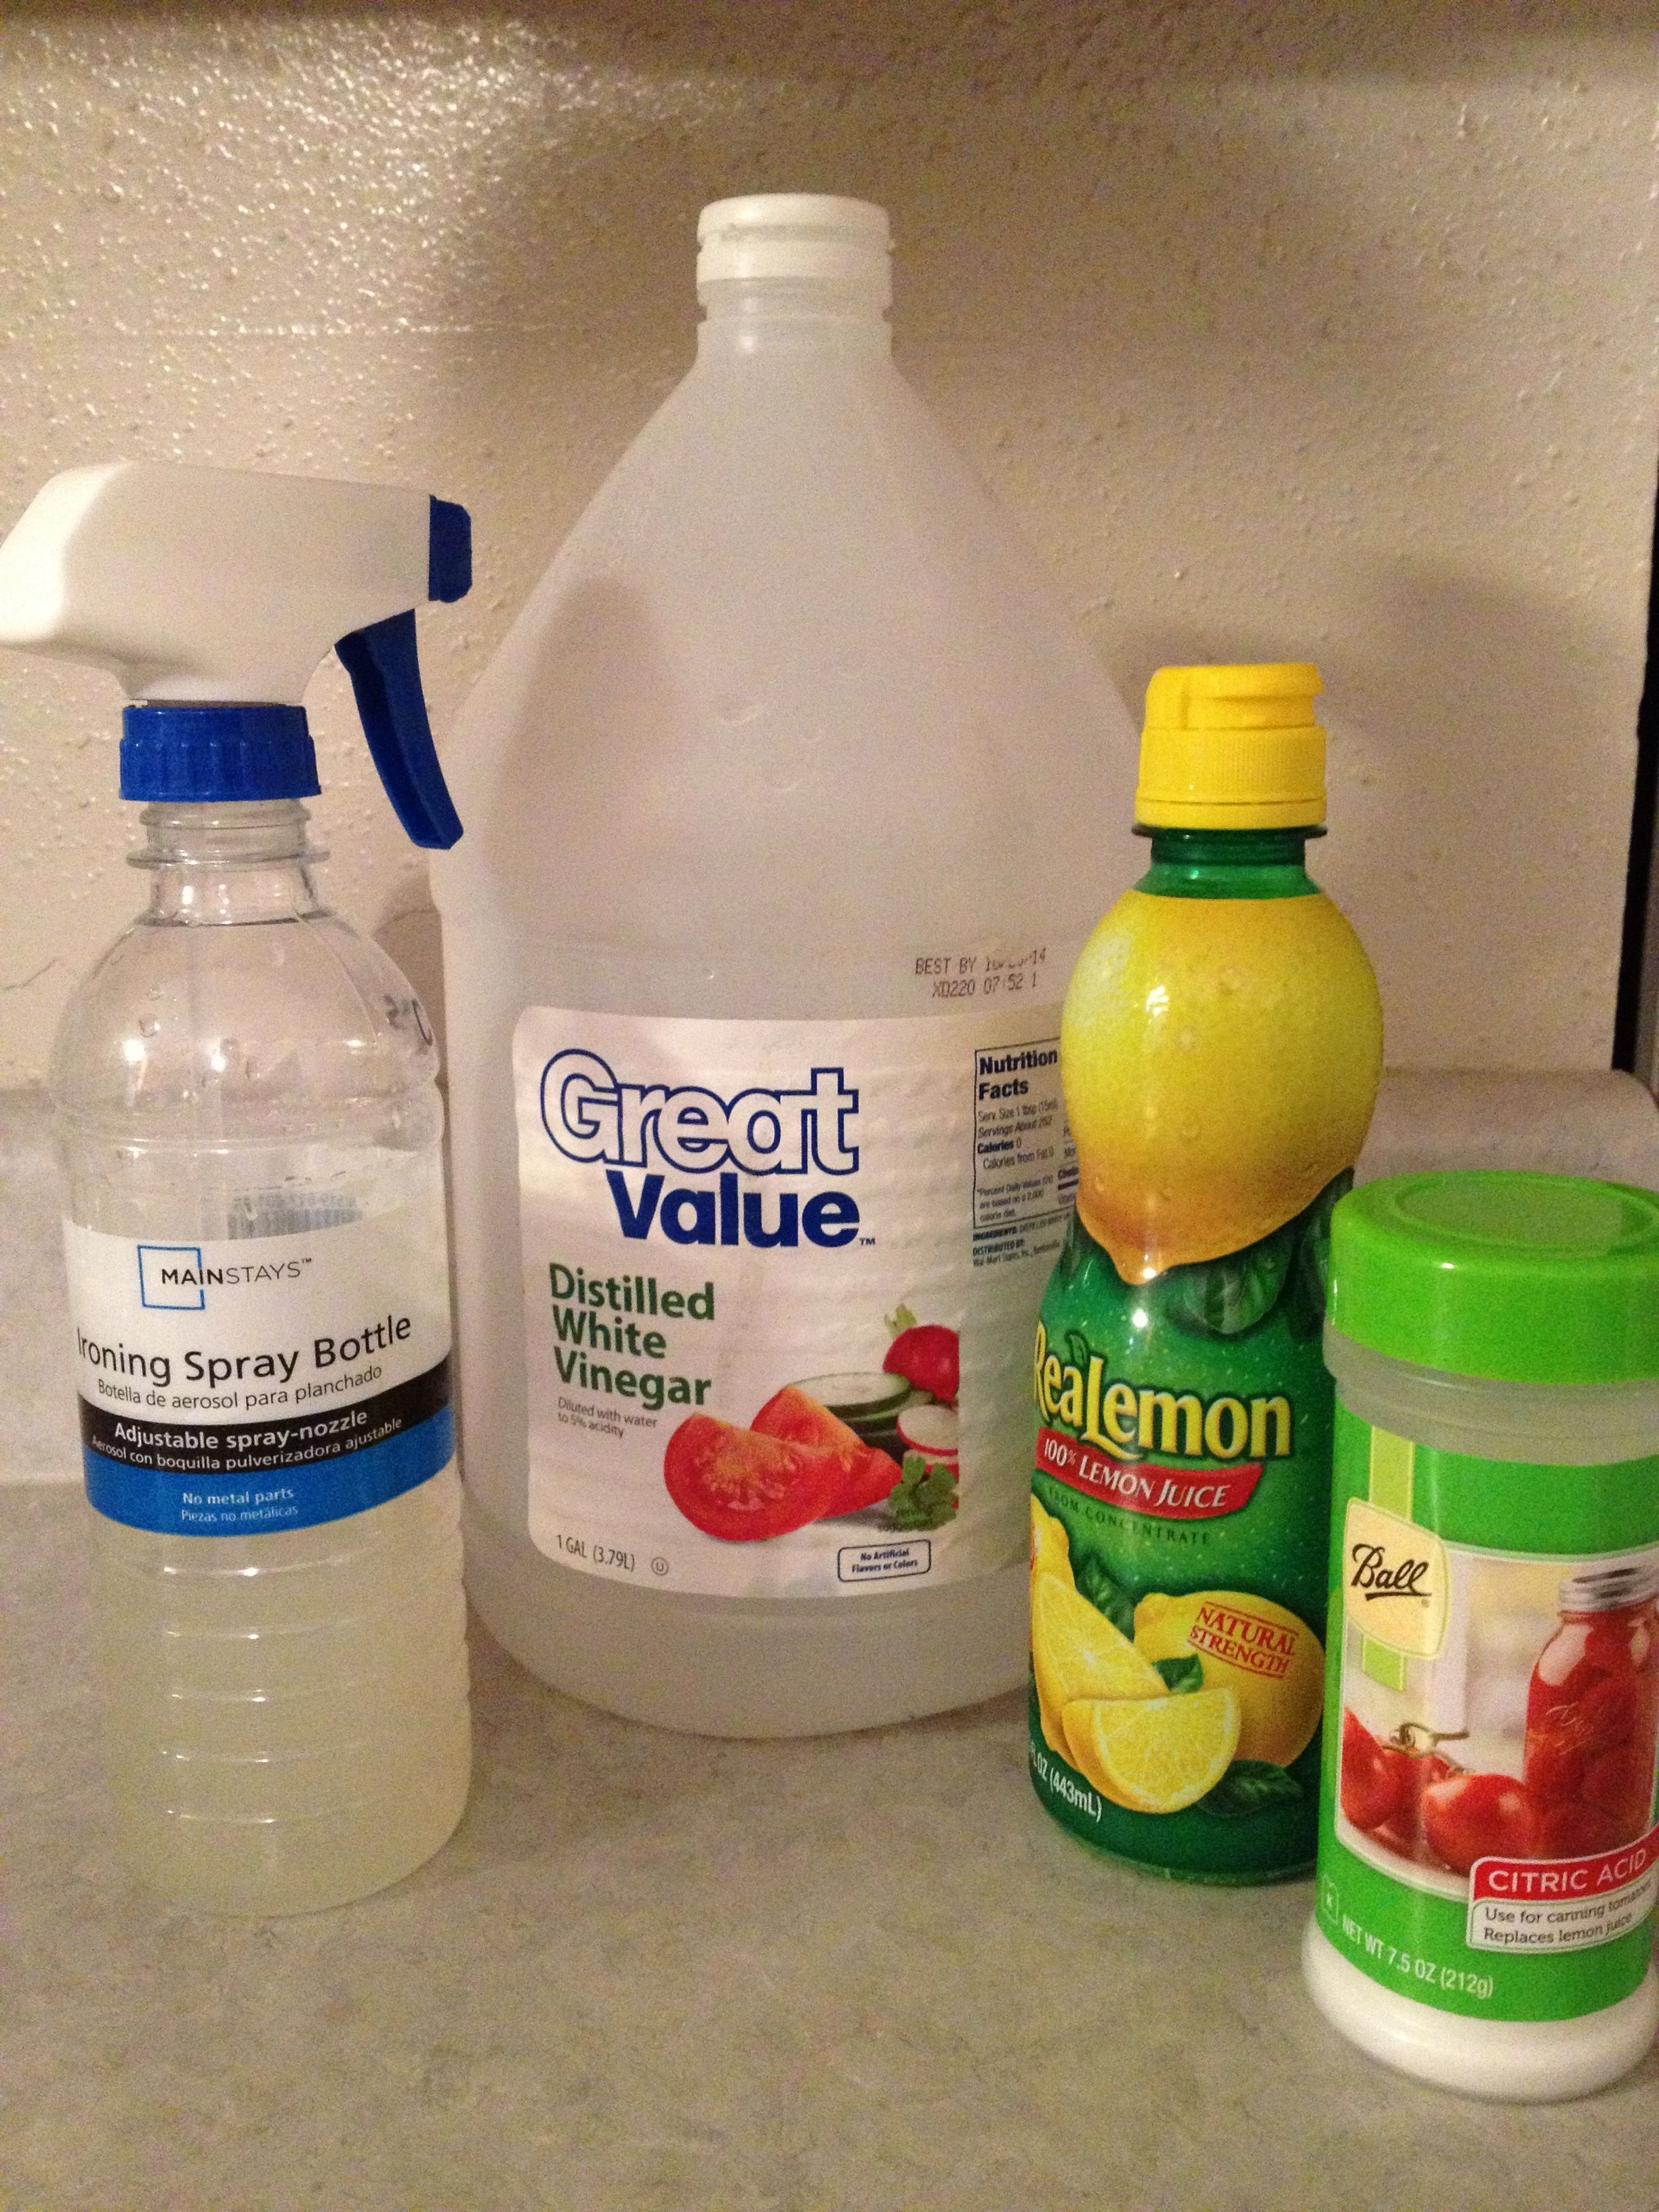 Super strength hard water deposit remover. I usually spray citric ...